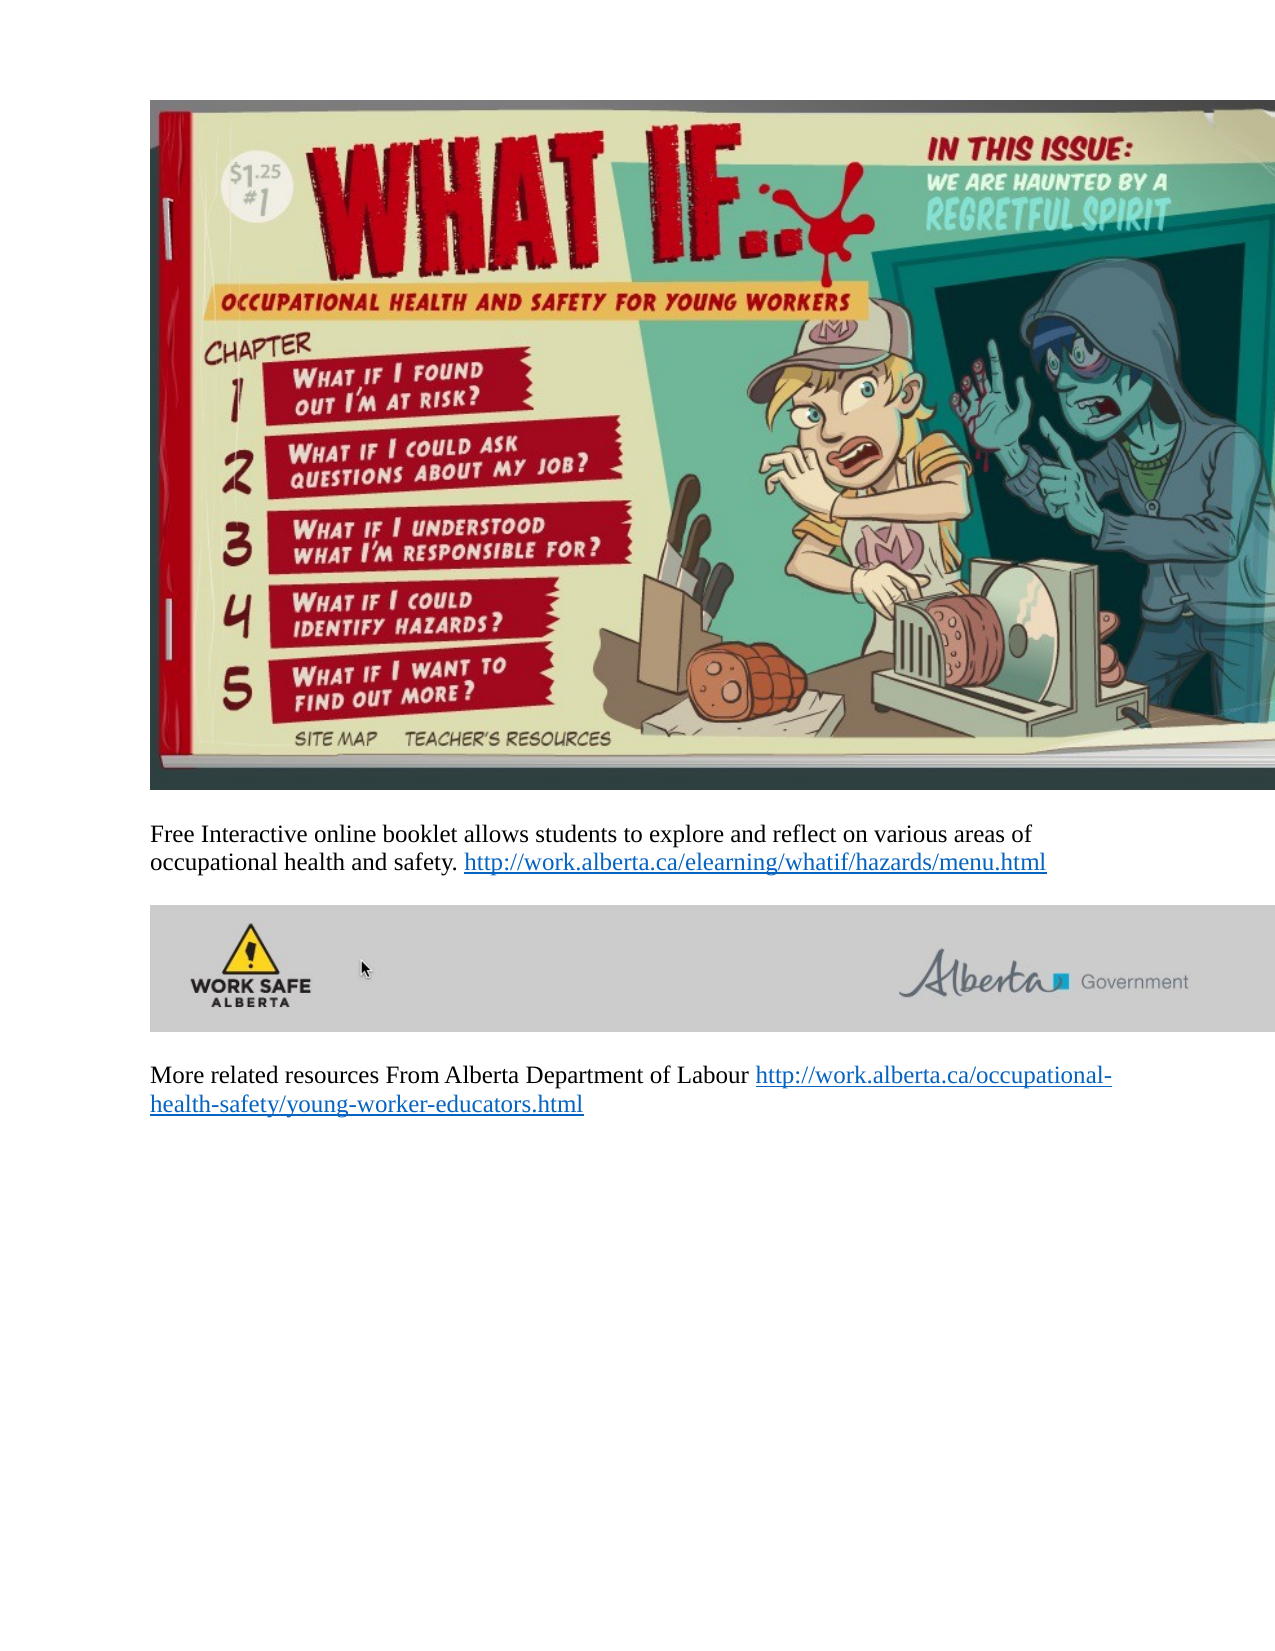 Free Interactive online booklet from AB Dept of Labour on occupational health and safety Resource Preview